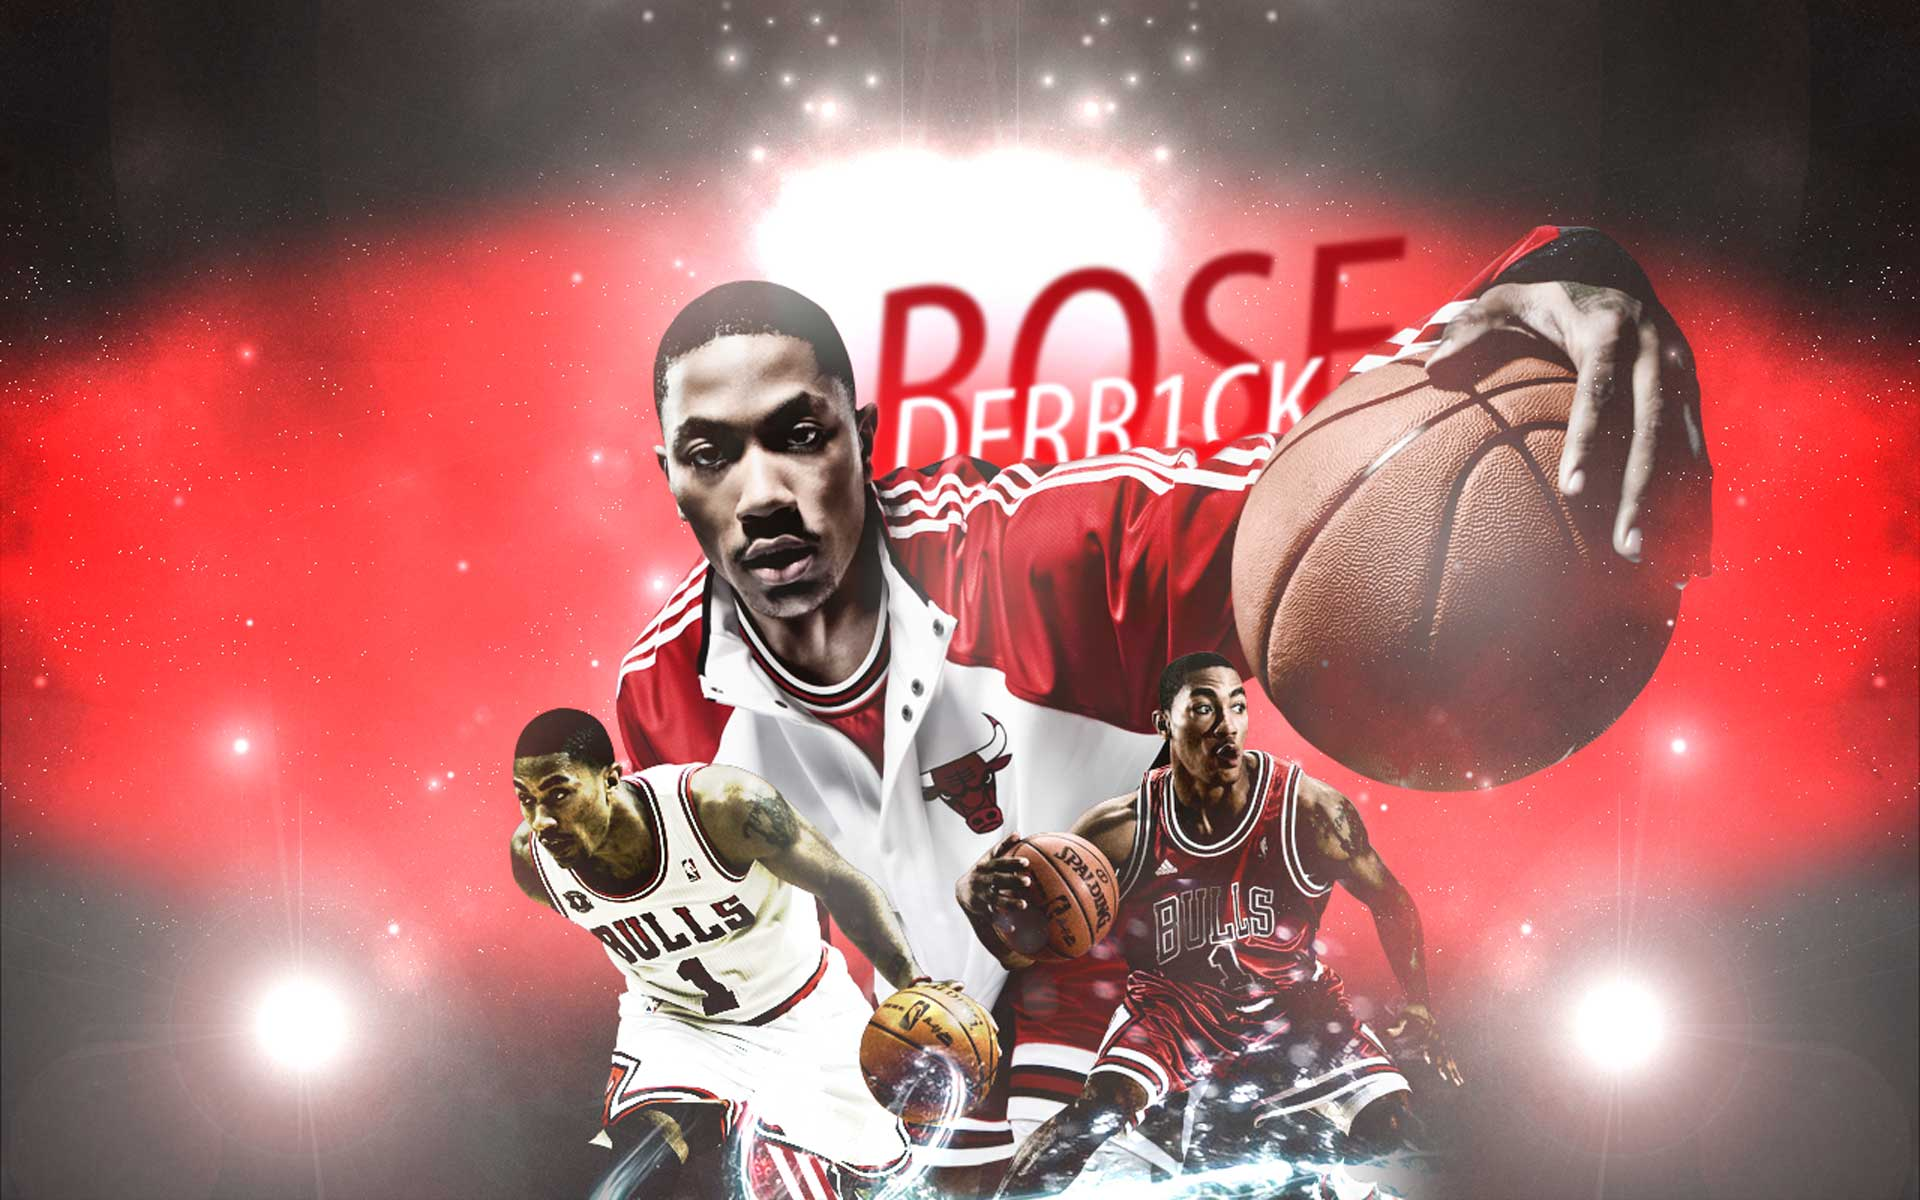 Derrick Rose wallpapers Derrick Rose background 1920x1200